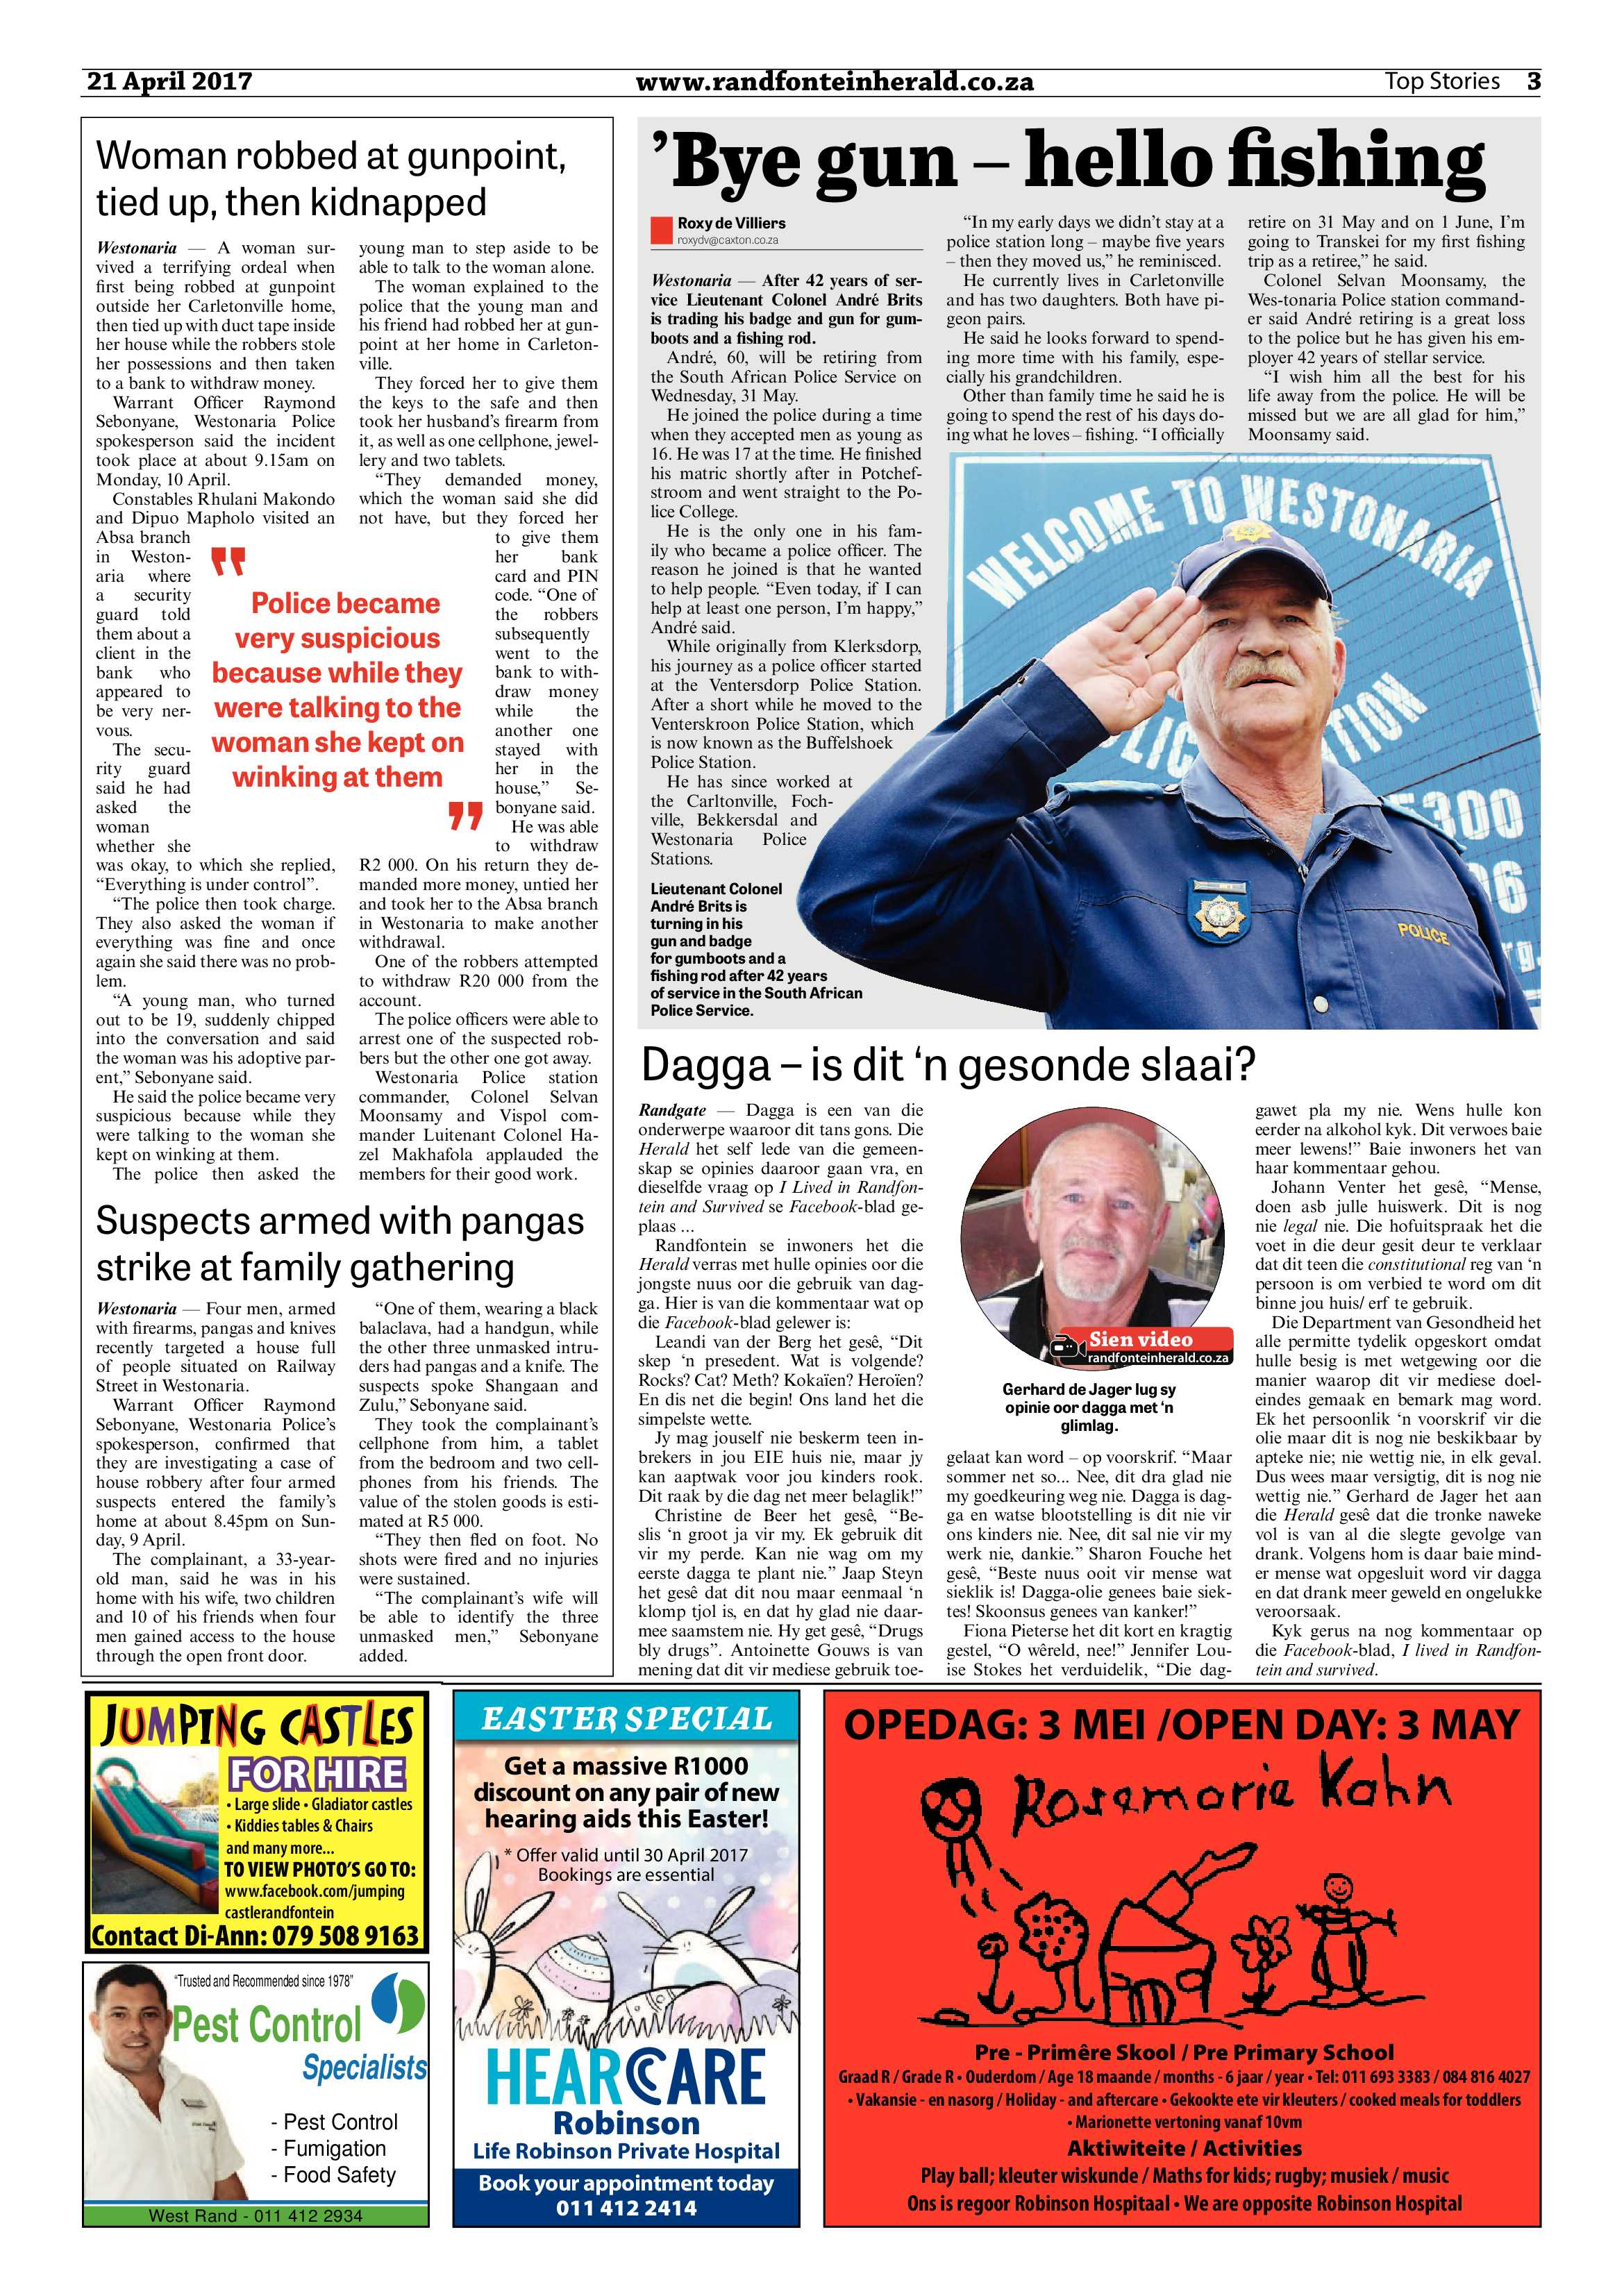 randfontein-herald-21-april-2017-epapers-page-3